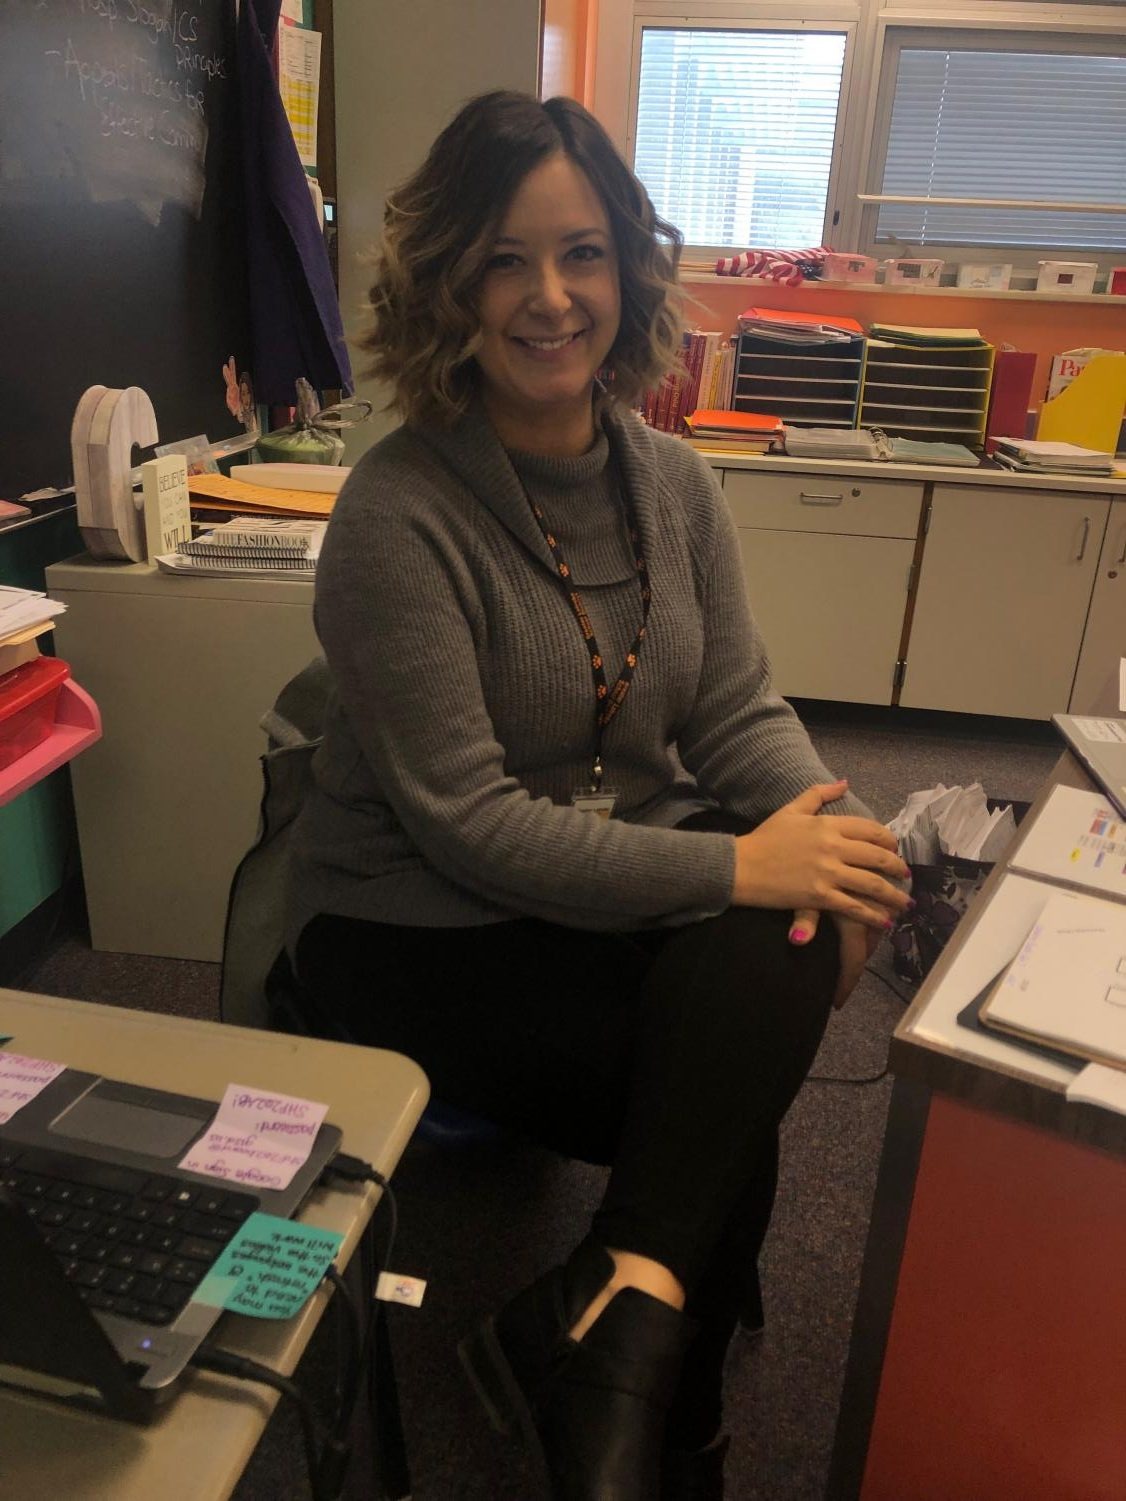 Family and Consumer Sciences teacher Mrs. Coss builds a positive environment for the students at Greater Latrobe.